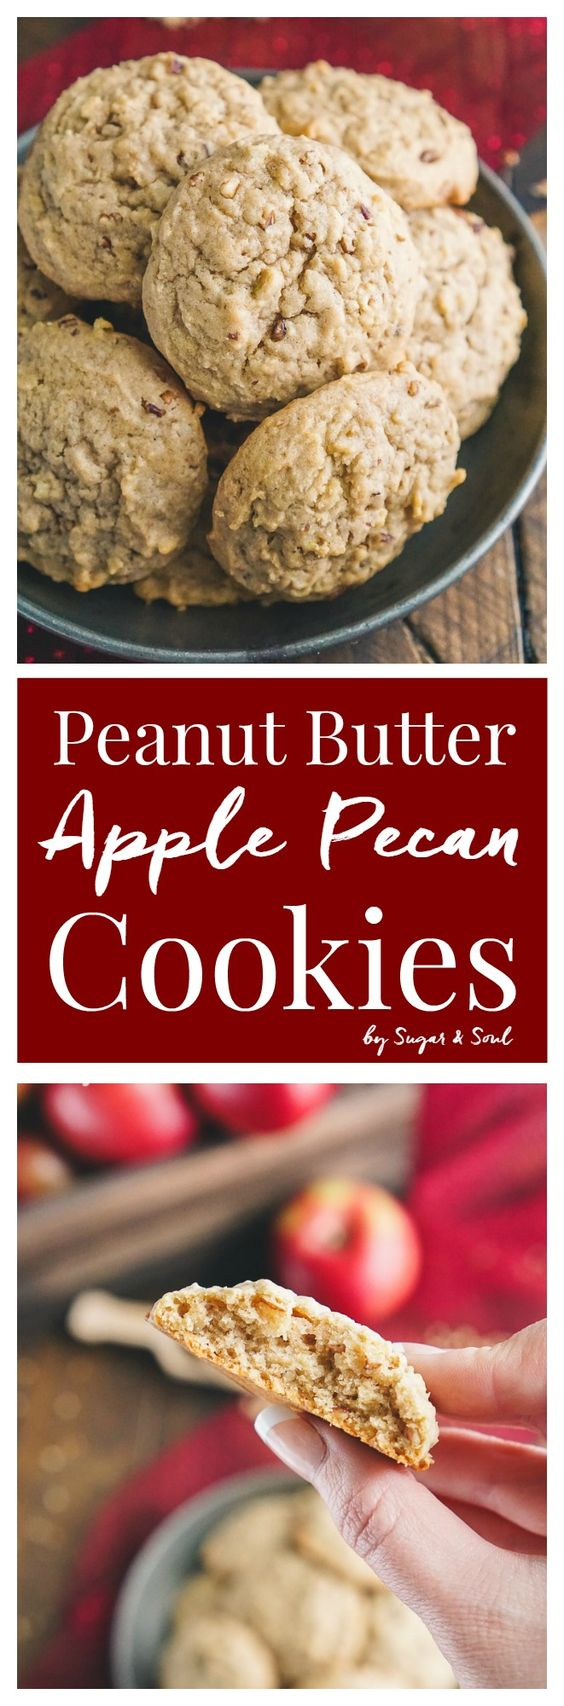 These Peanut Butter Apple Pecan Cookies are everything we love about the classic combo with a touch of fall! Soft and cakey with a slightly crisp outer shell and ready to eat in 25 minutes!